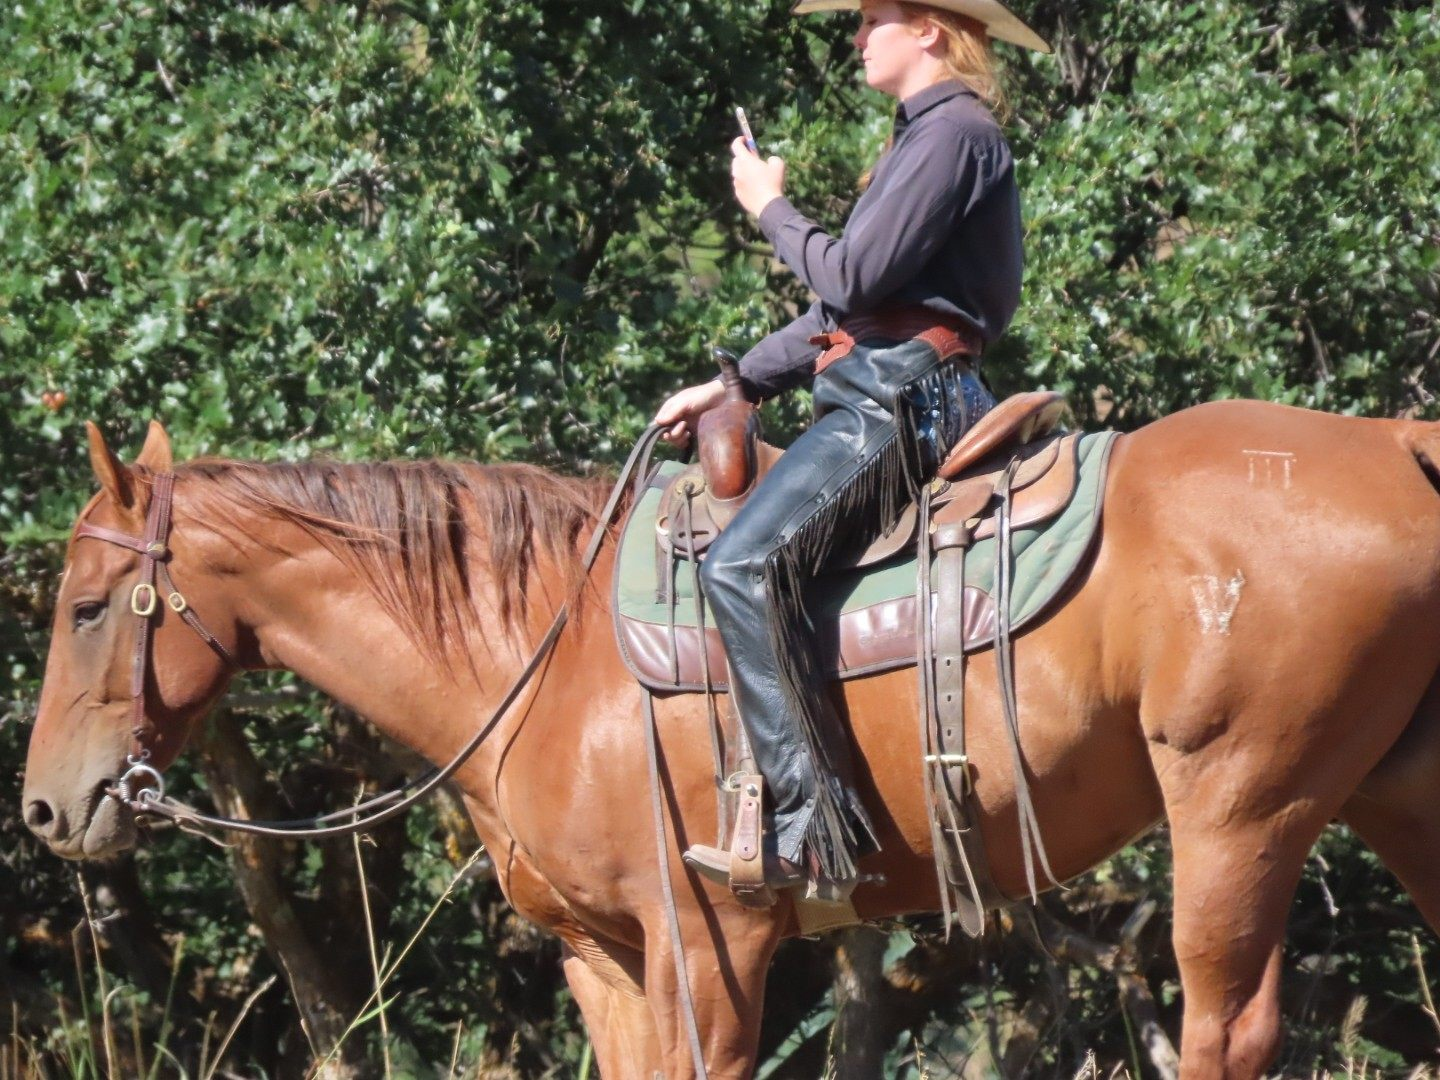 Riding horses with mobile phones